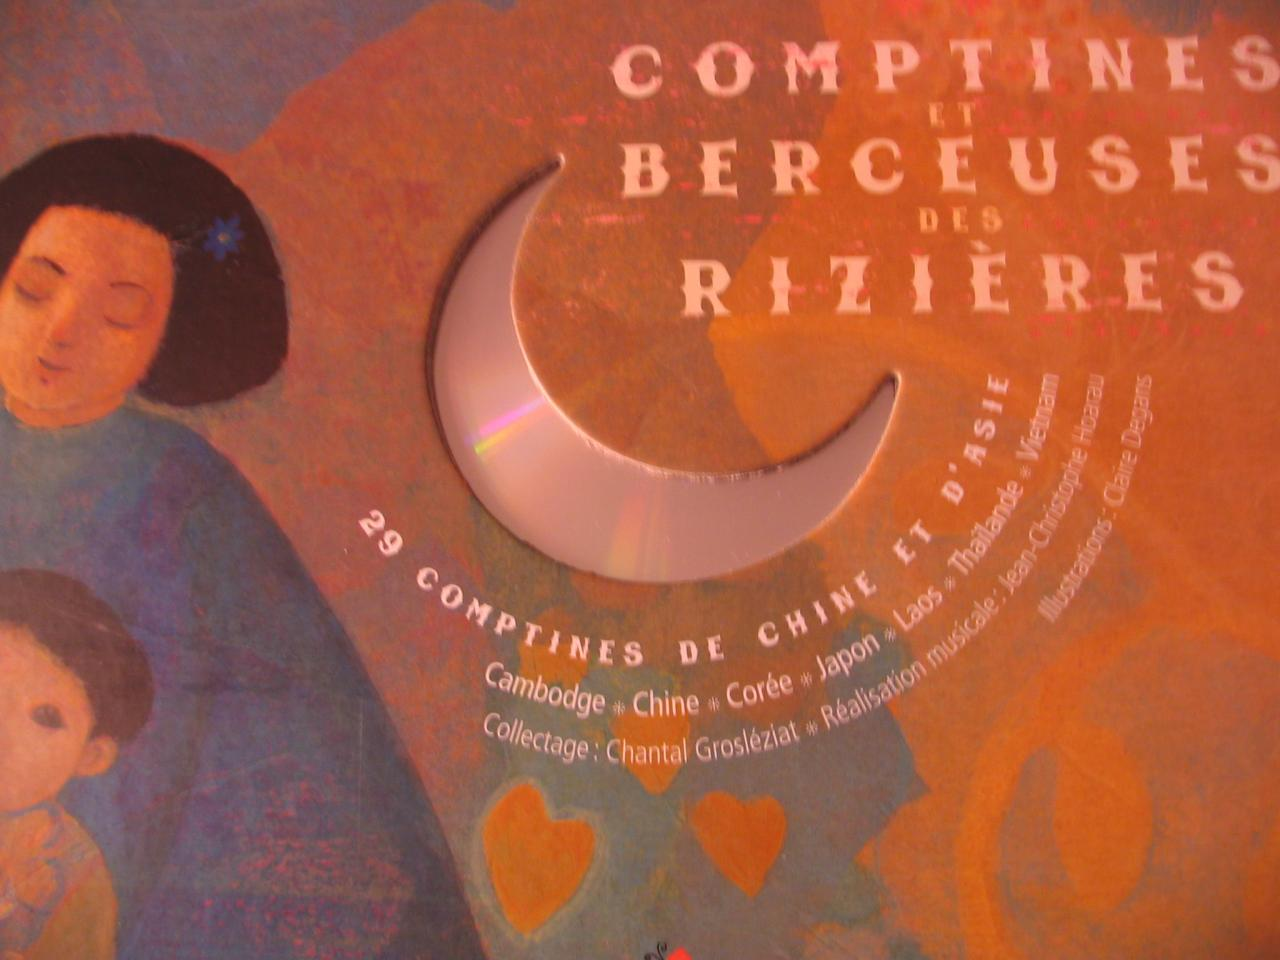 rizieres CD